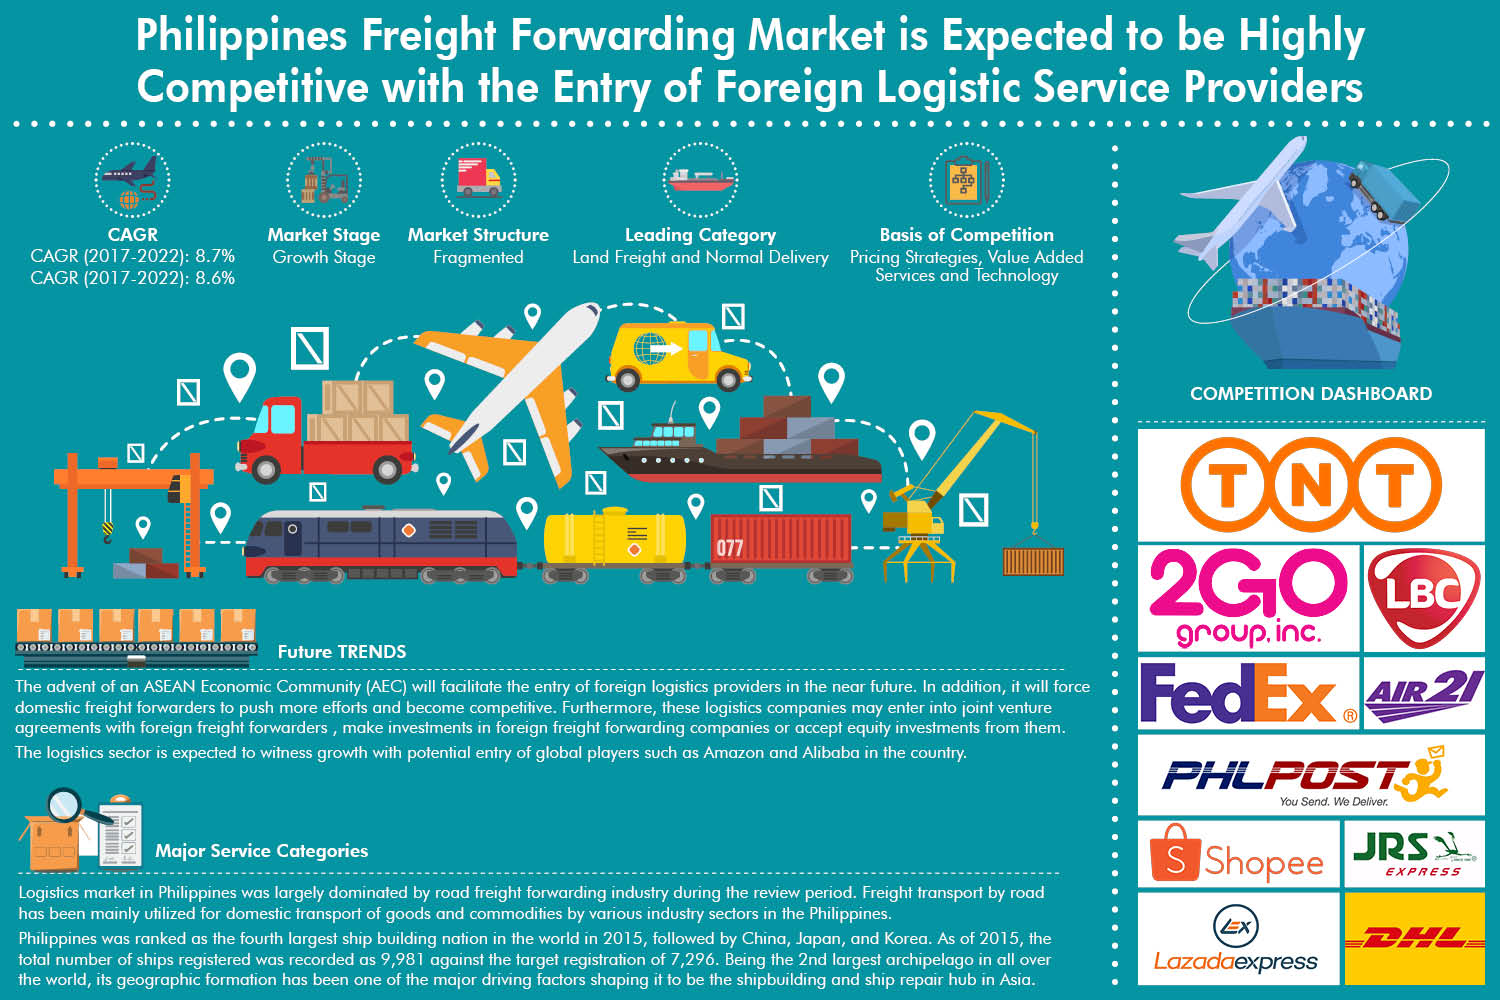 Philippines Freight Forwarding Market